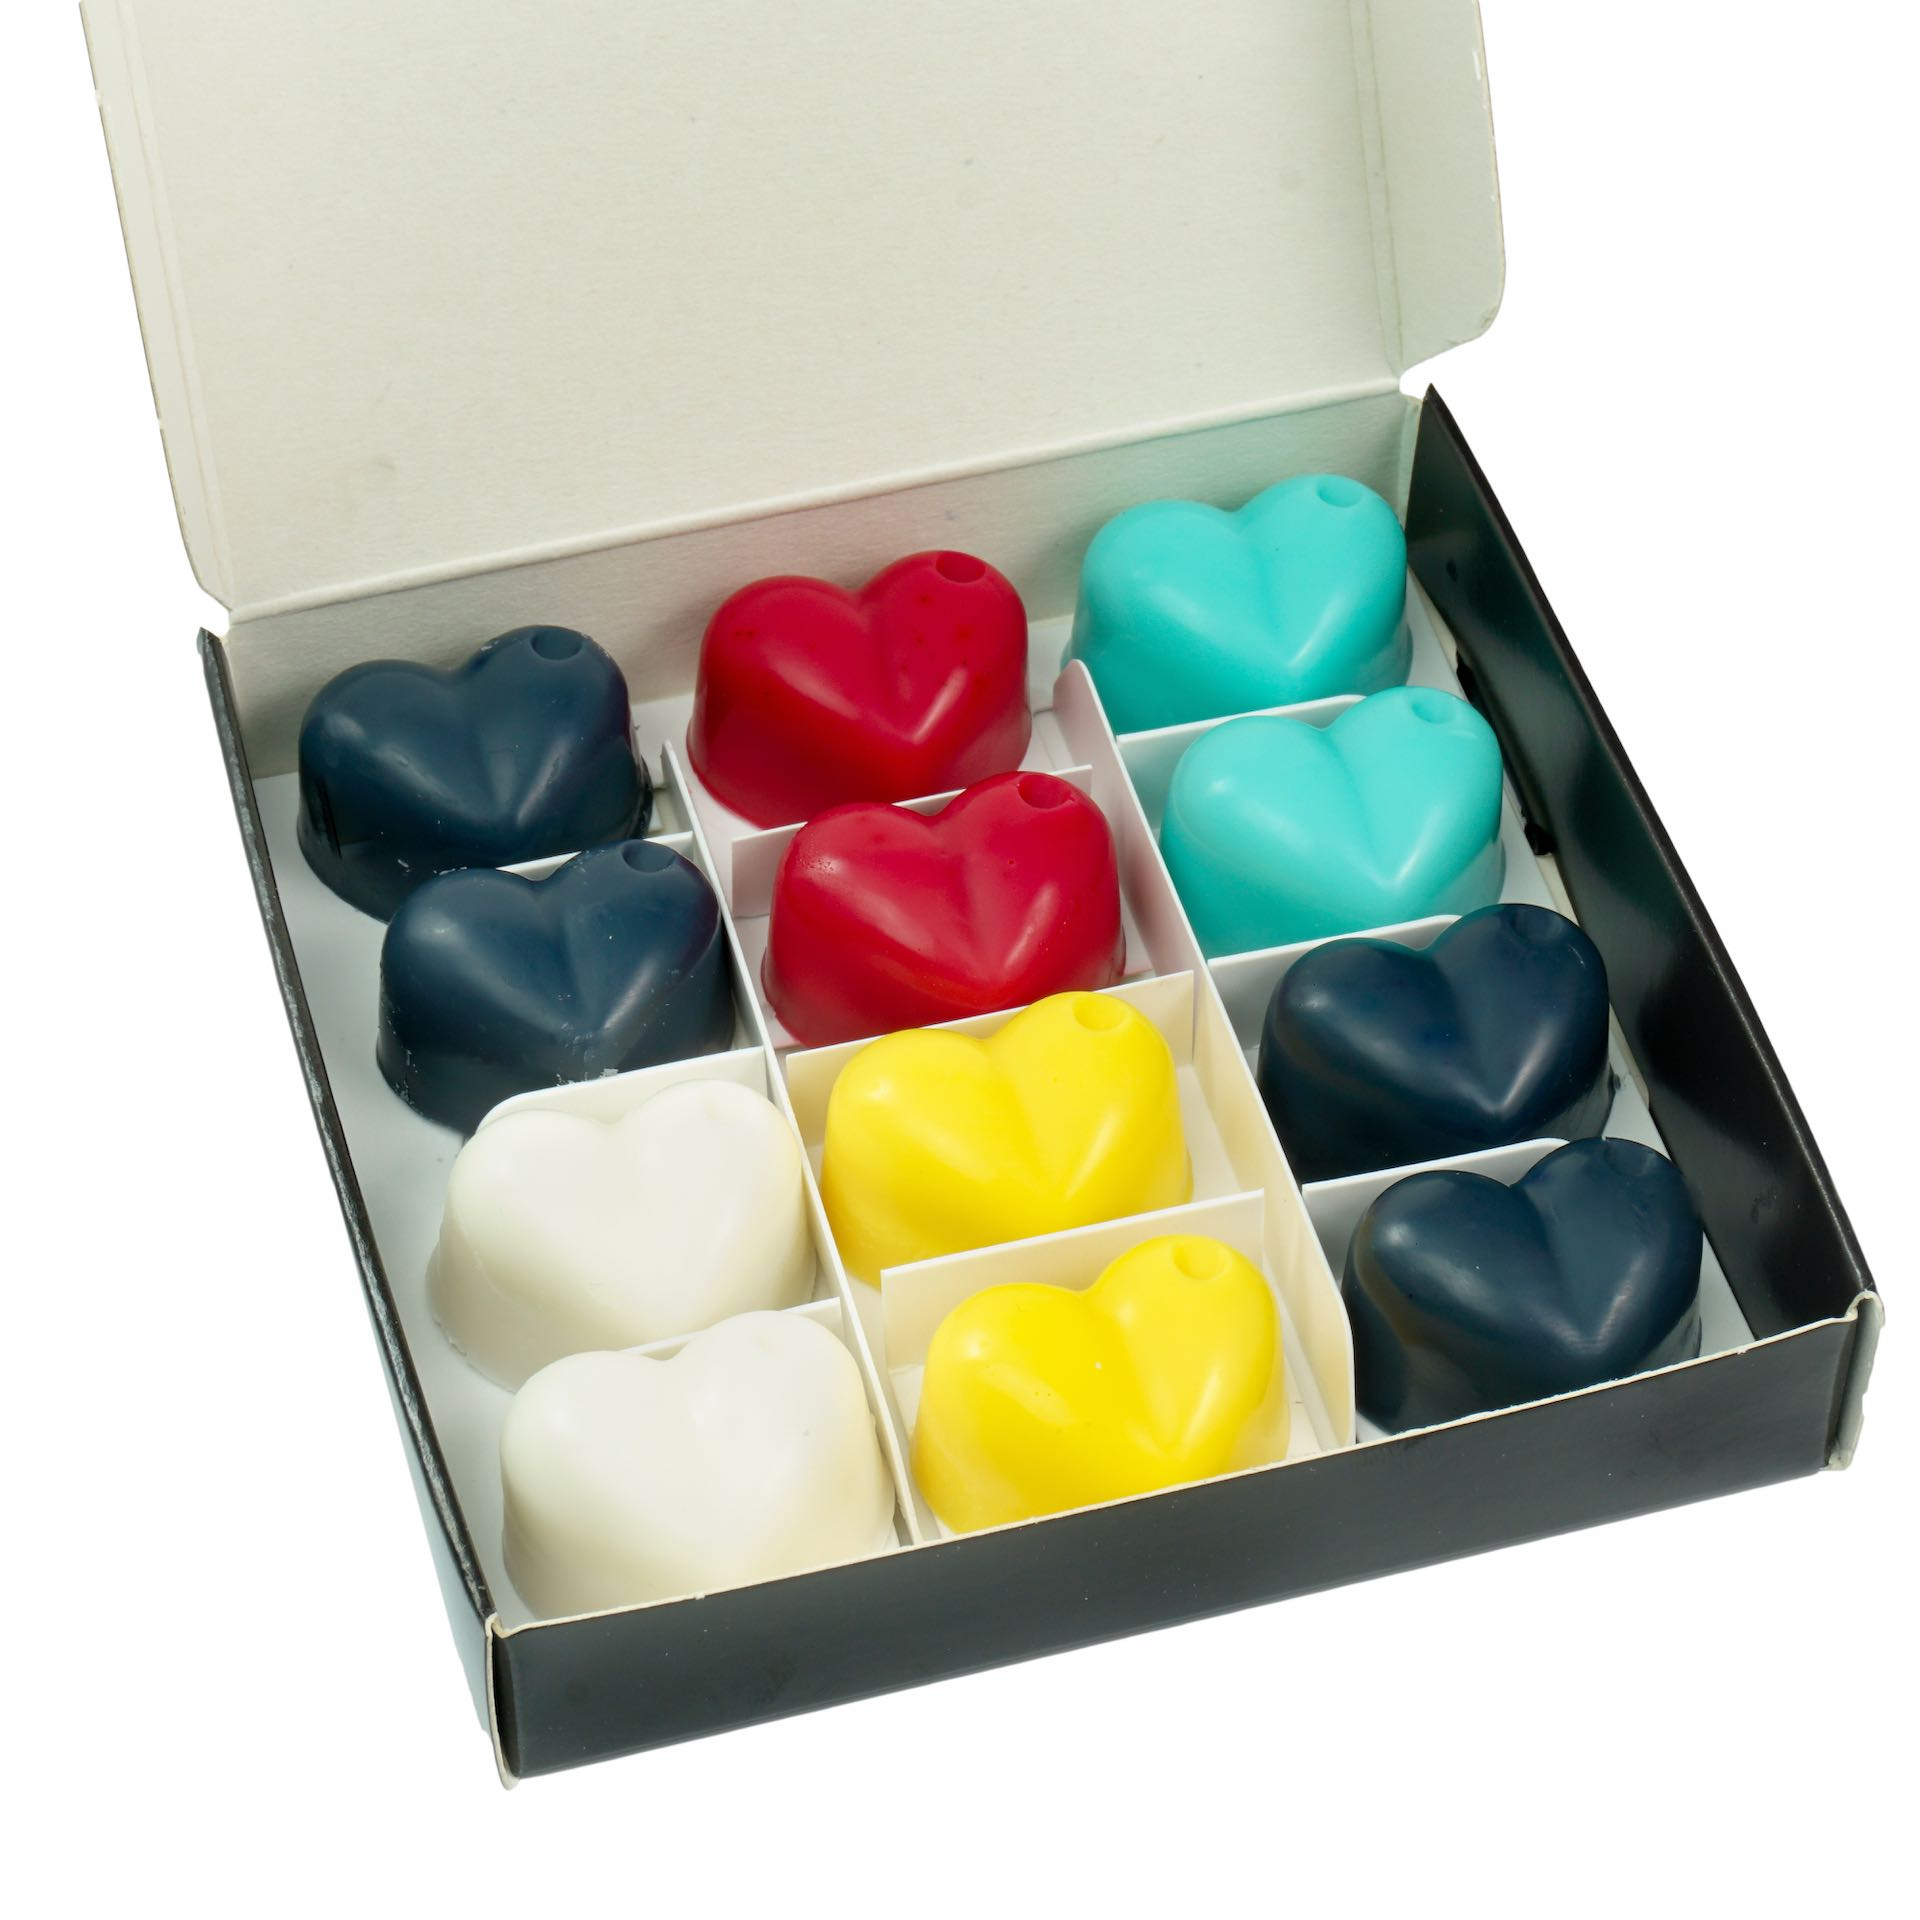 Balneaves Aftershave Collection Wax Melt Sample Box